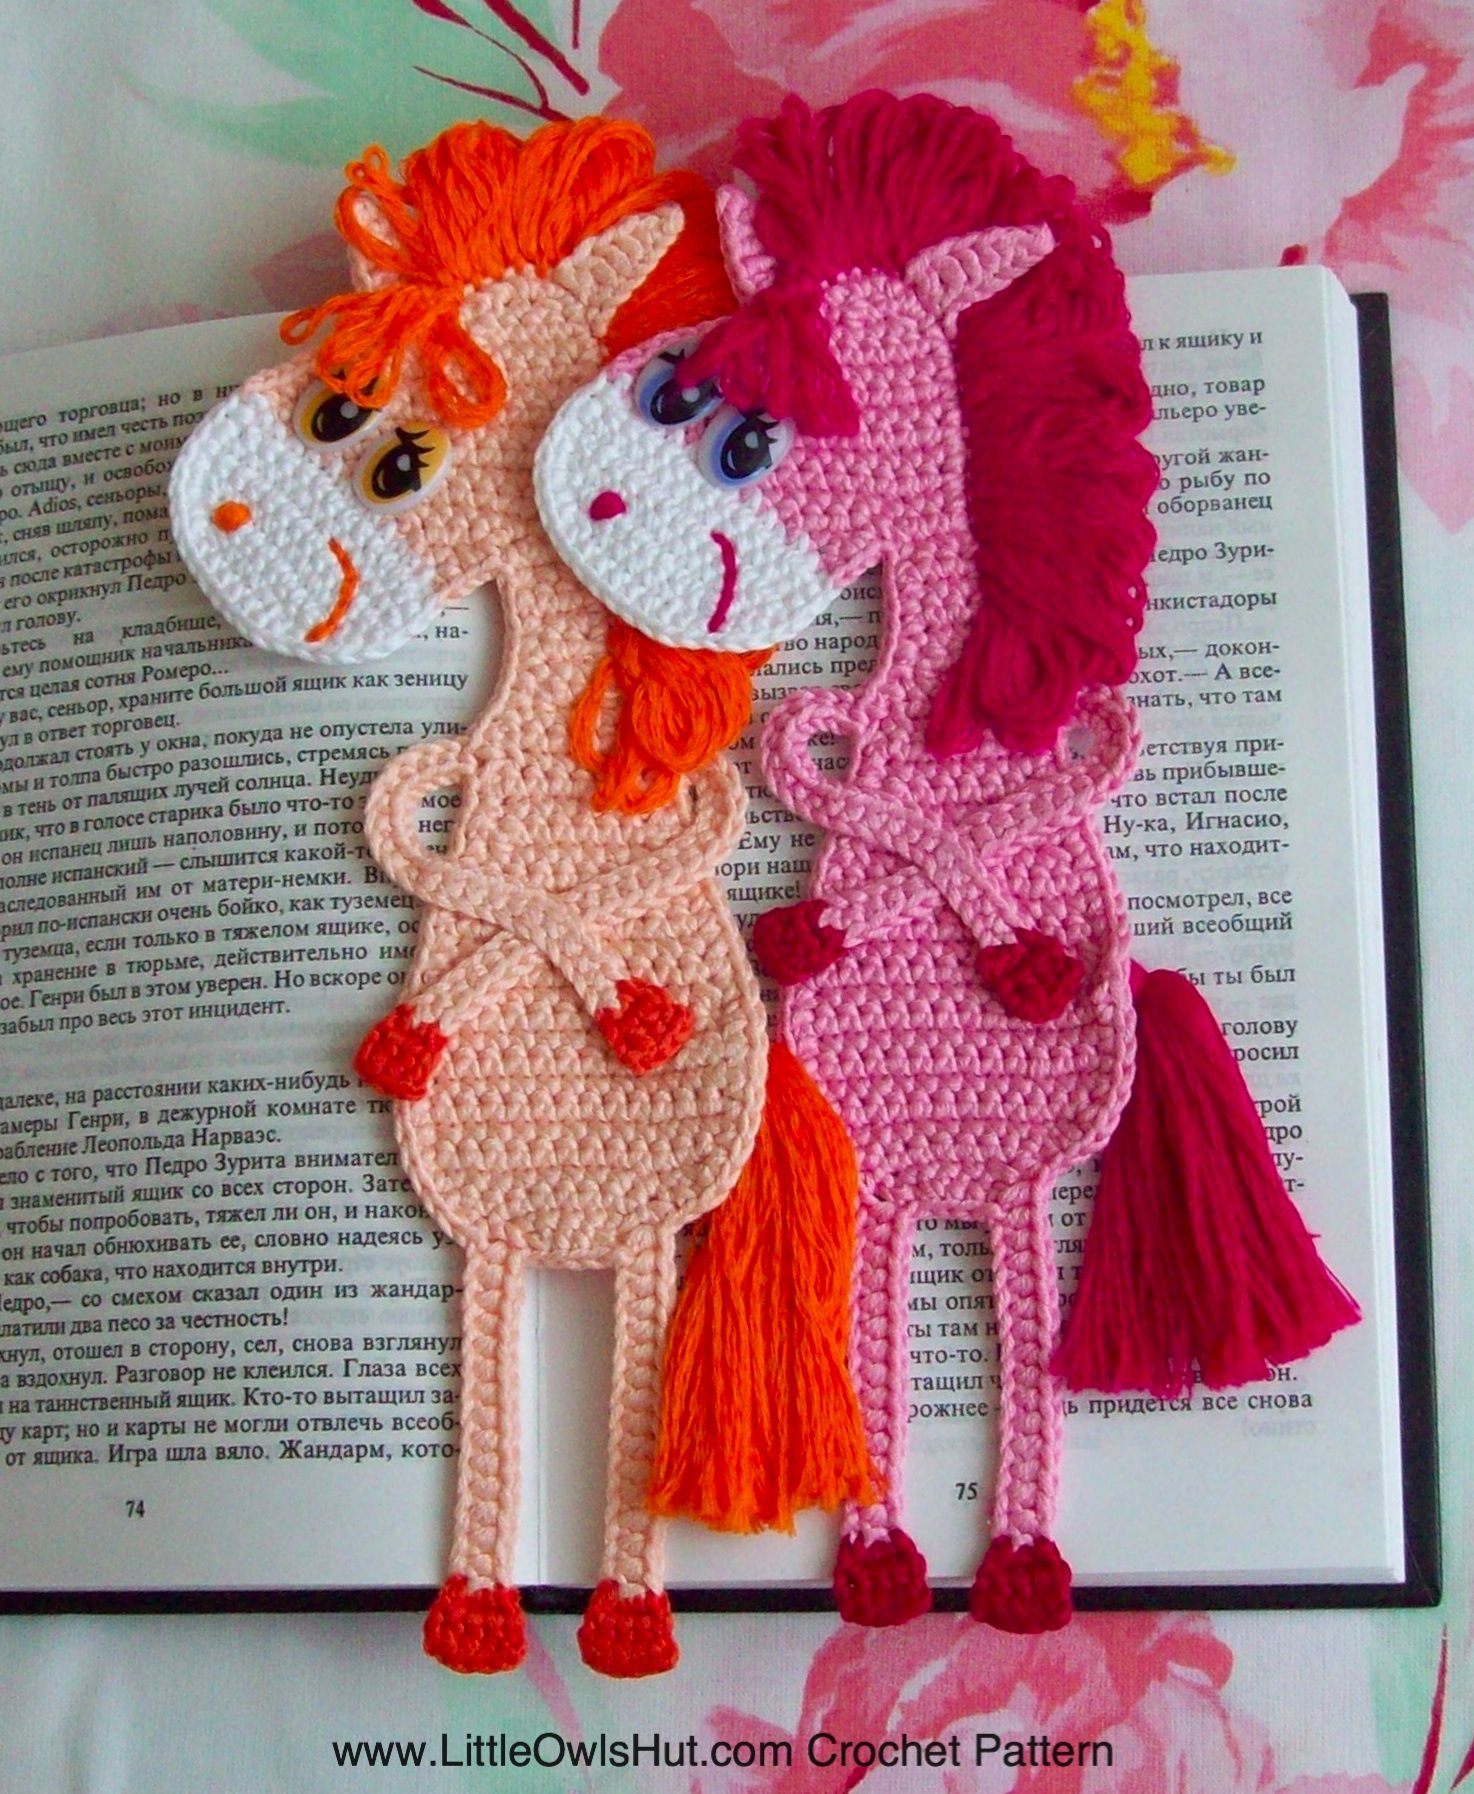 9 bookmarks set amigurumi crochet patterns 5 pdf files by 025 horse bookmark crochet pattern on ravelry by svetlana zabelina for littleowlshut bankloansurffo Gallery